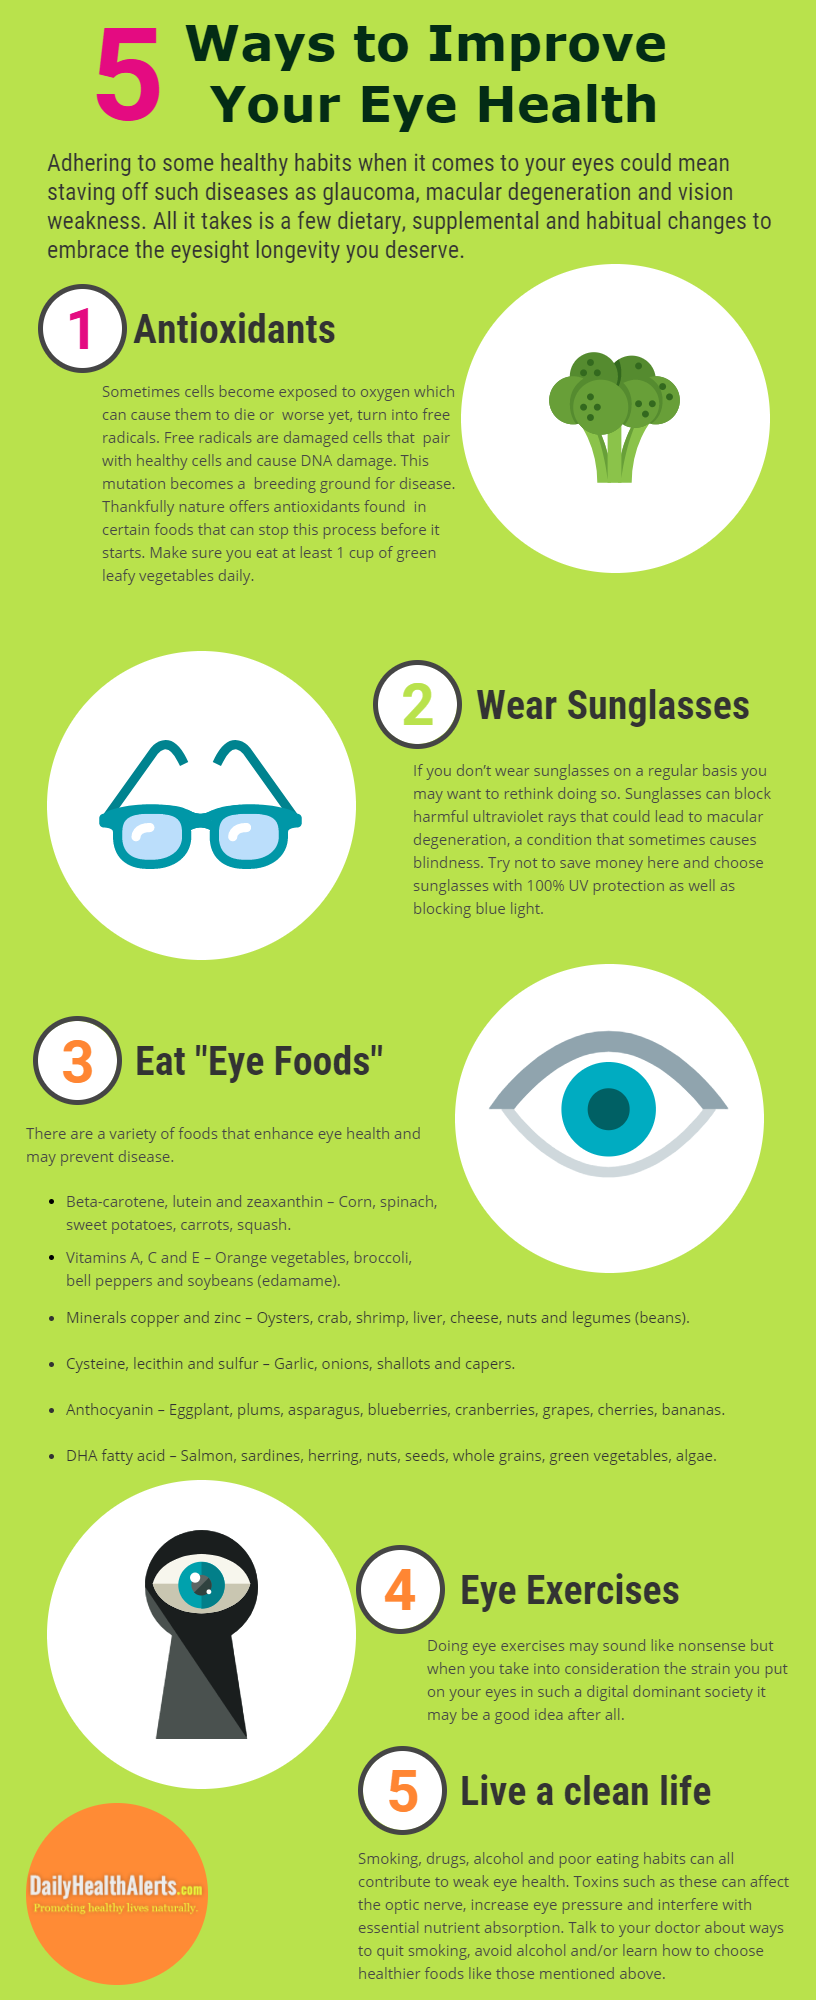 5 Ways to Improve Your Eye Health